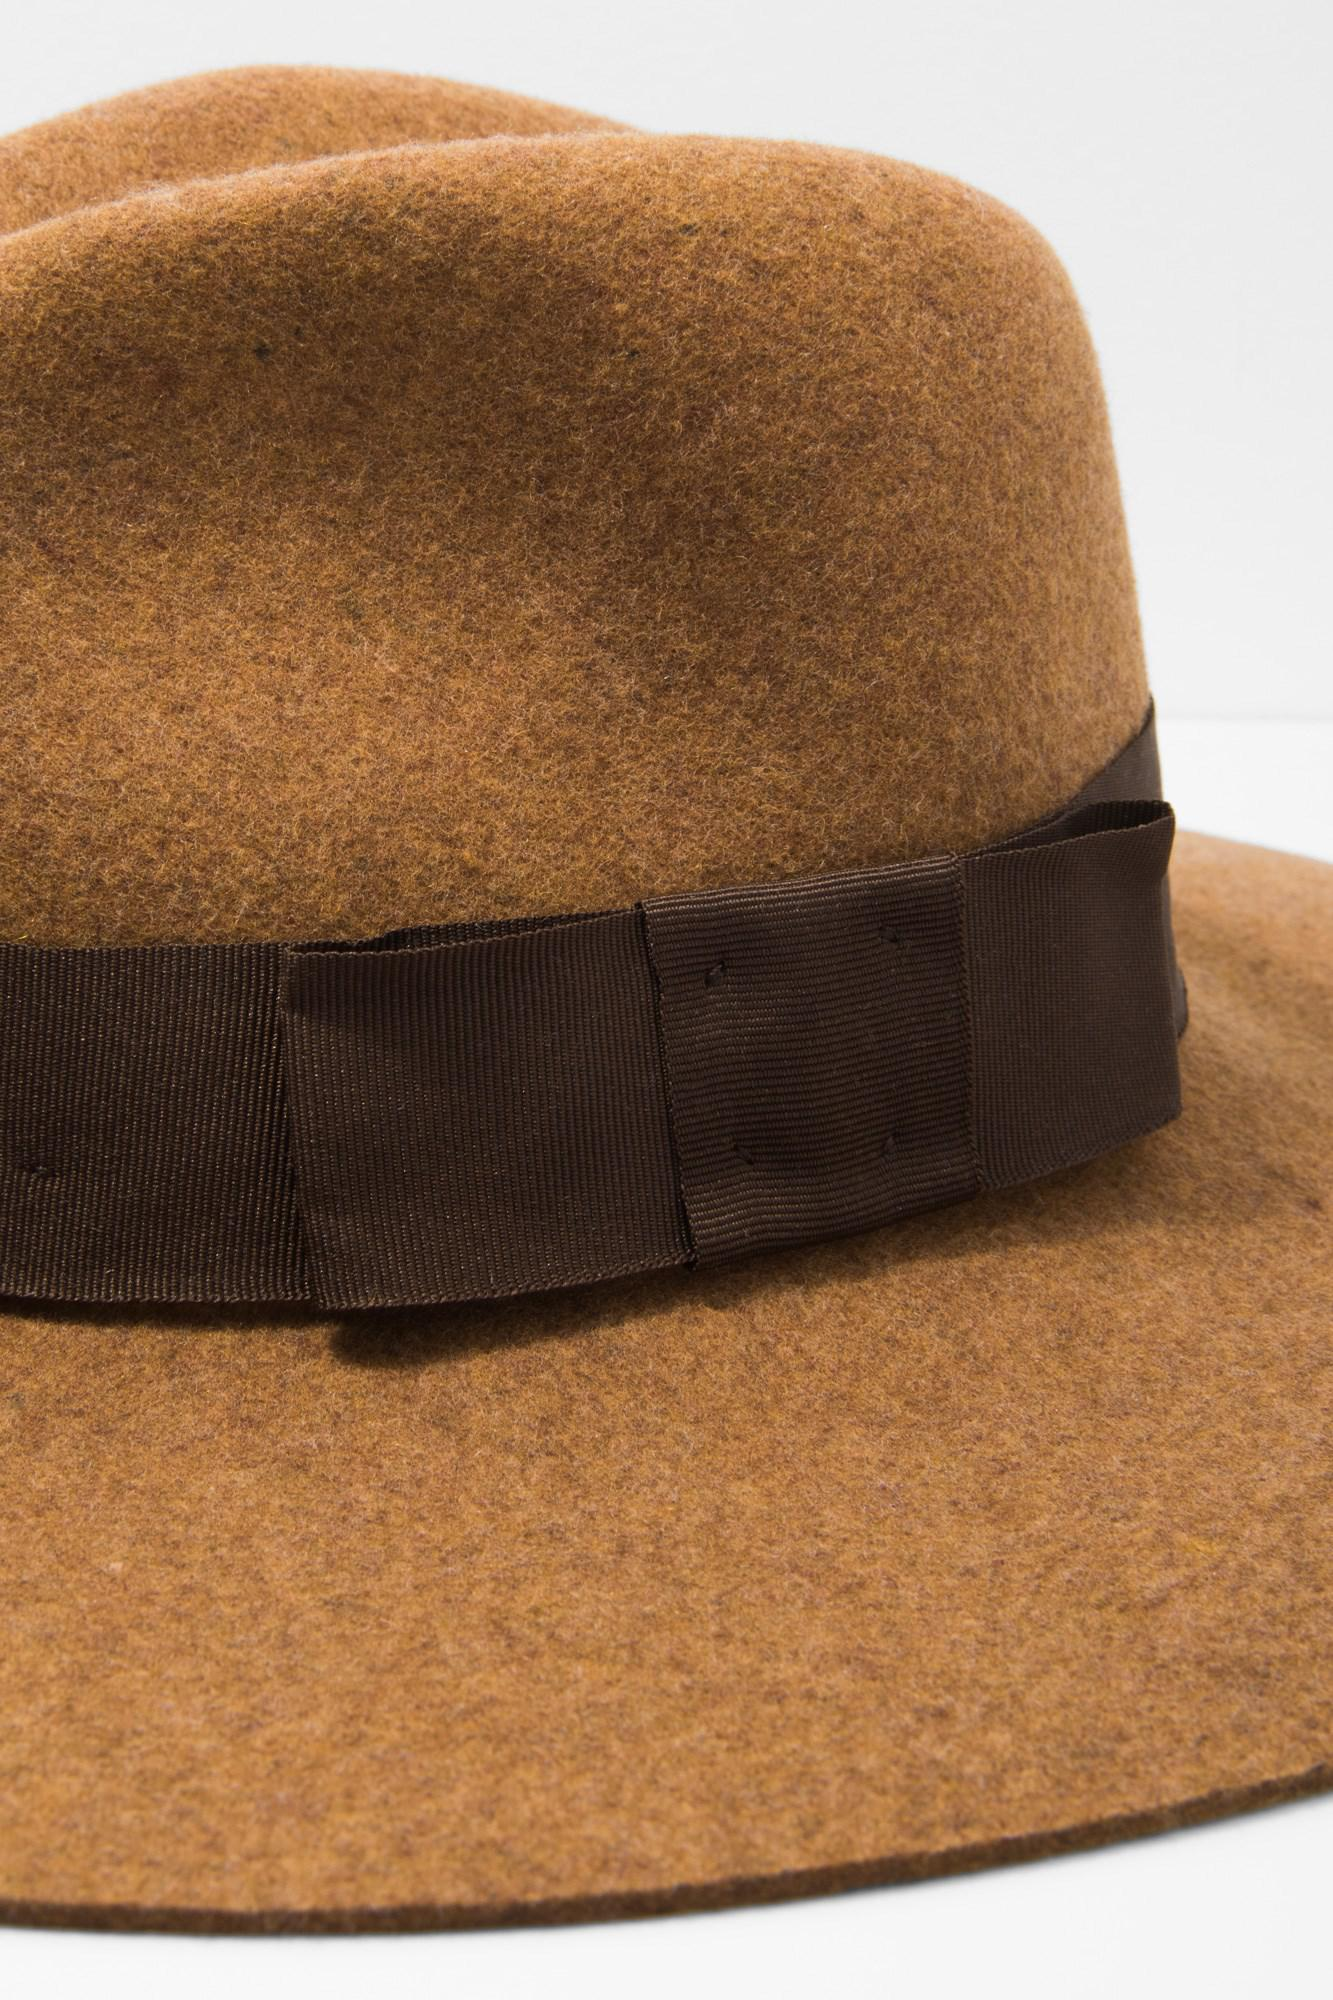 ad150df9e34f 7 For All Mankind - Brown Brixton Piper Hat In Heather Coffee for Men - Lyst